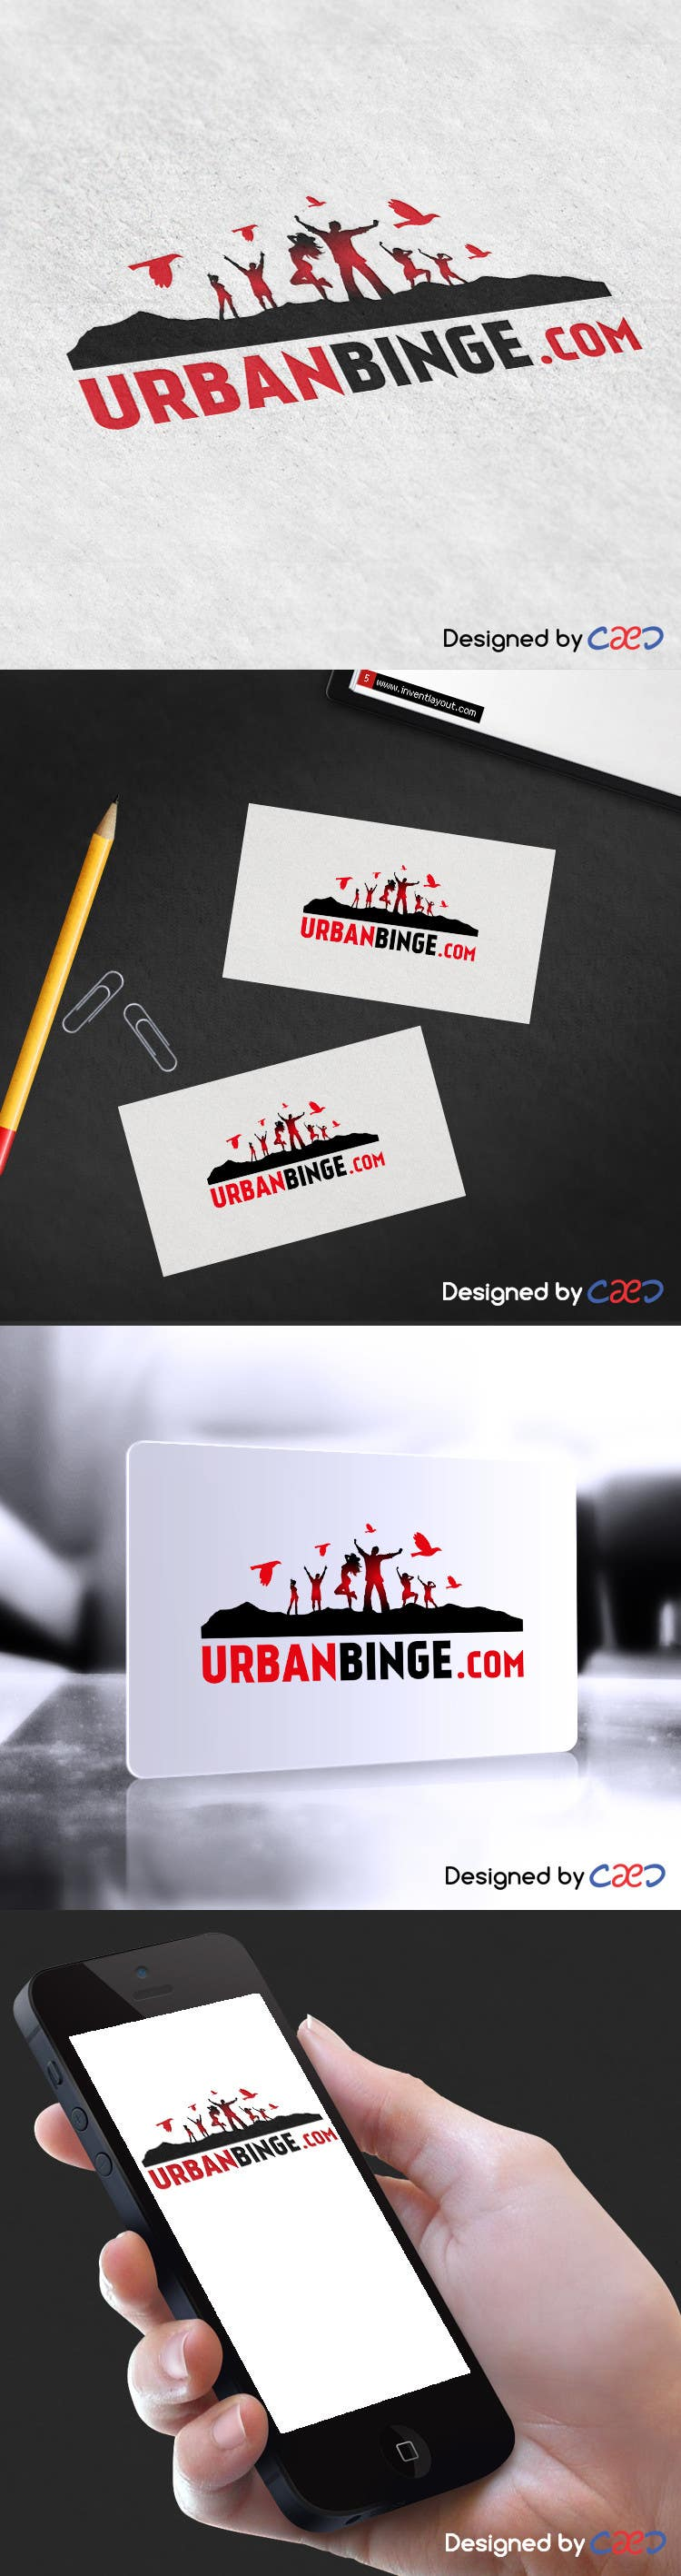 #47 for Design a Logo for a website by ChocobarArce